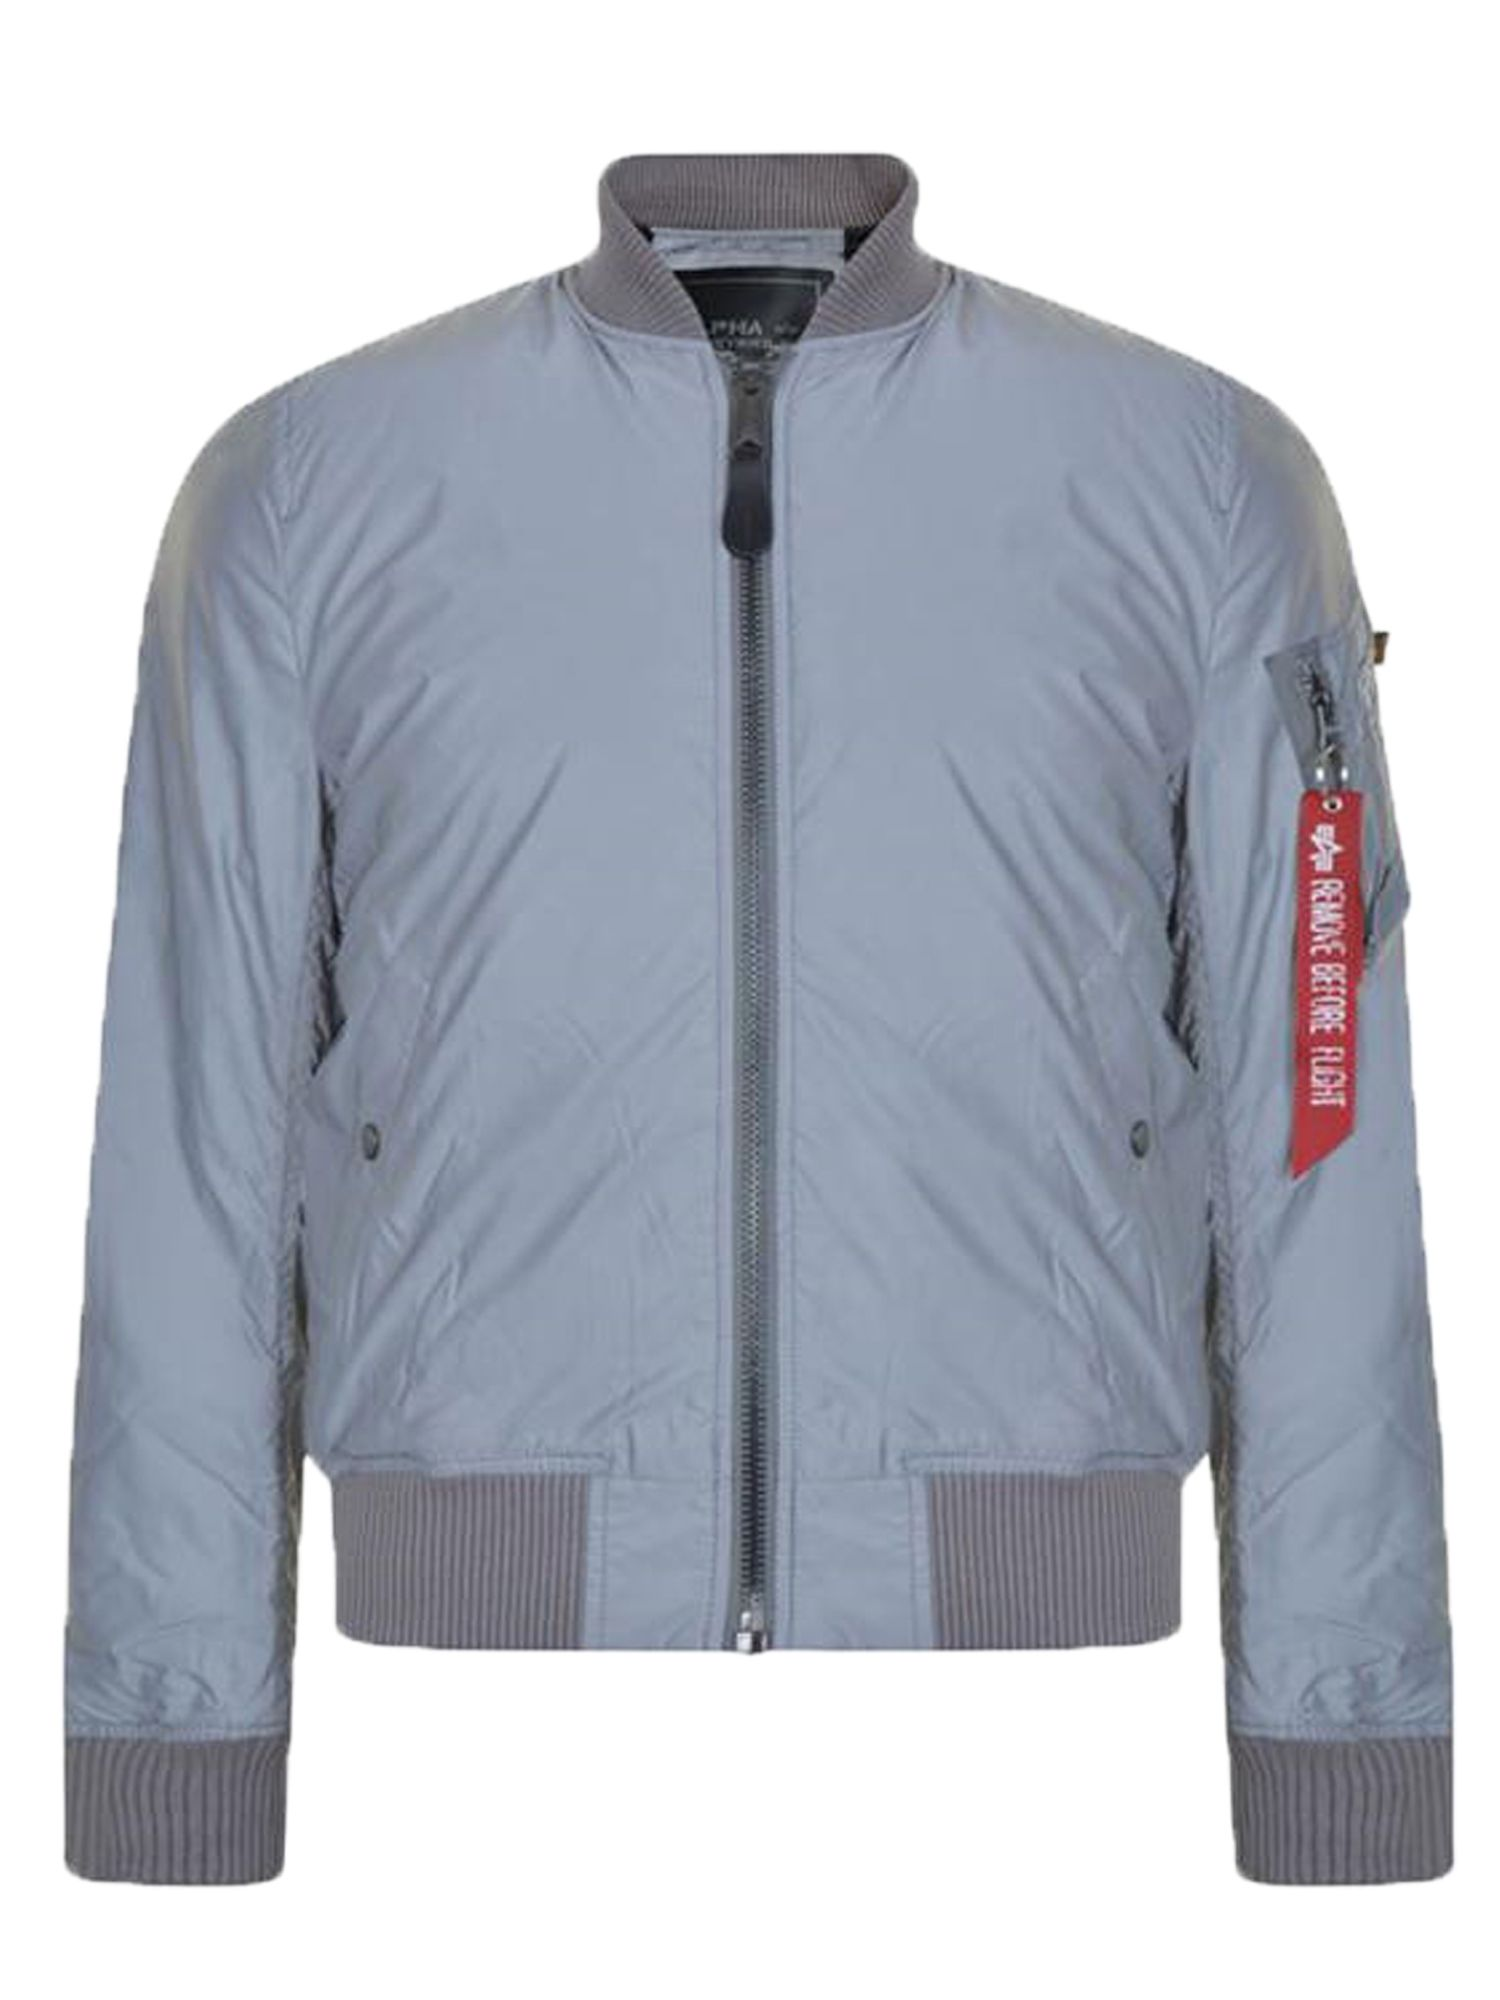 Alpha Industries Men's Alpha Industries MA-1 Rvf Reflective Coat, Grey